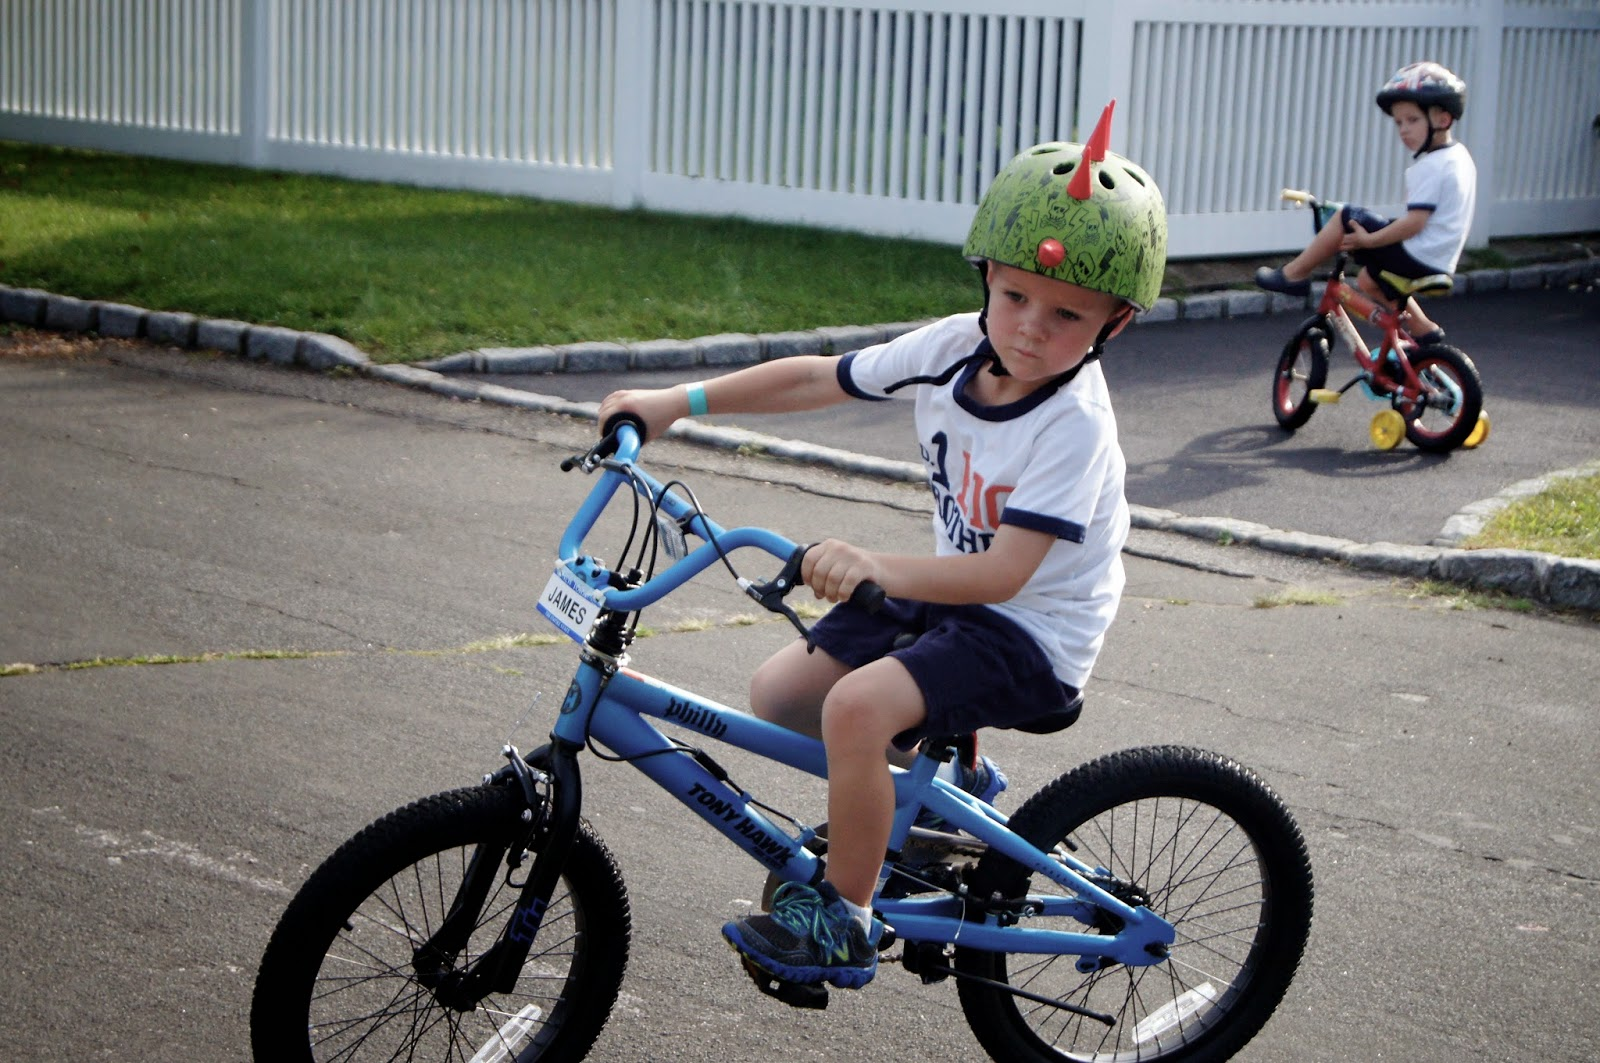 5 year old riding bike